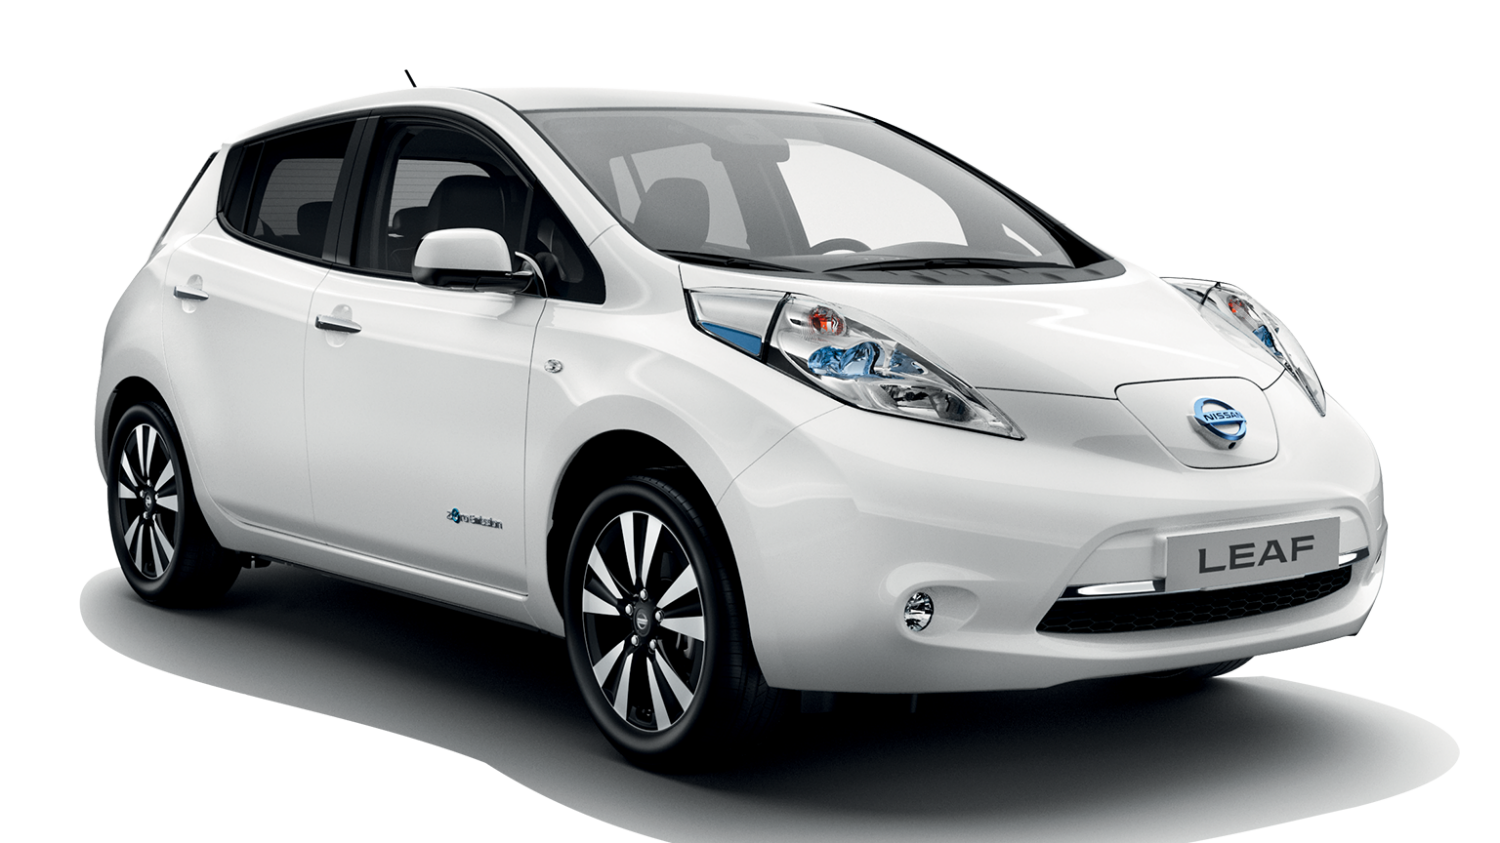 prix caract ristiques nissan leaf voiture 100 lectrique nissan. Black Bedroom Furniture Sets. Home Design Ideas